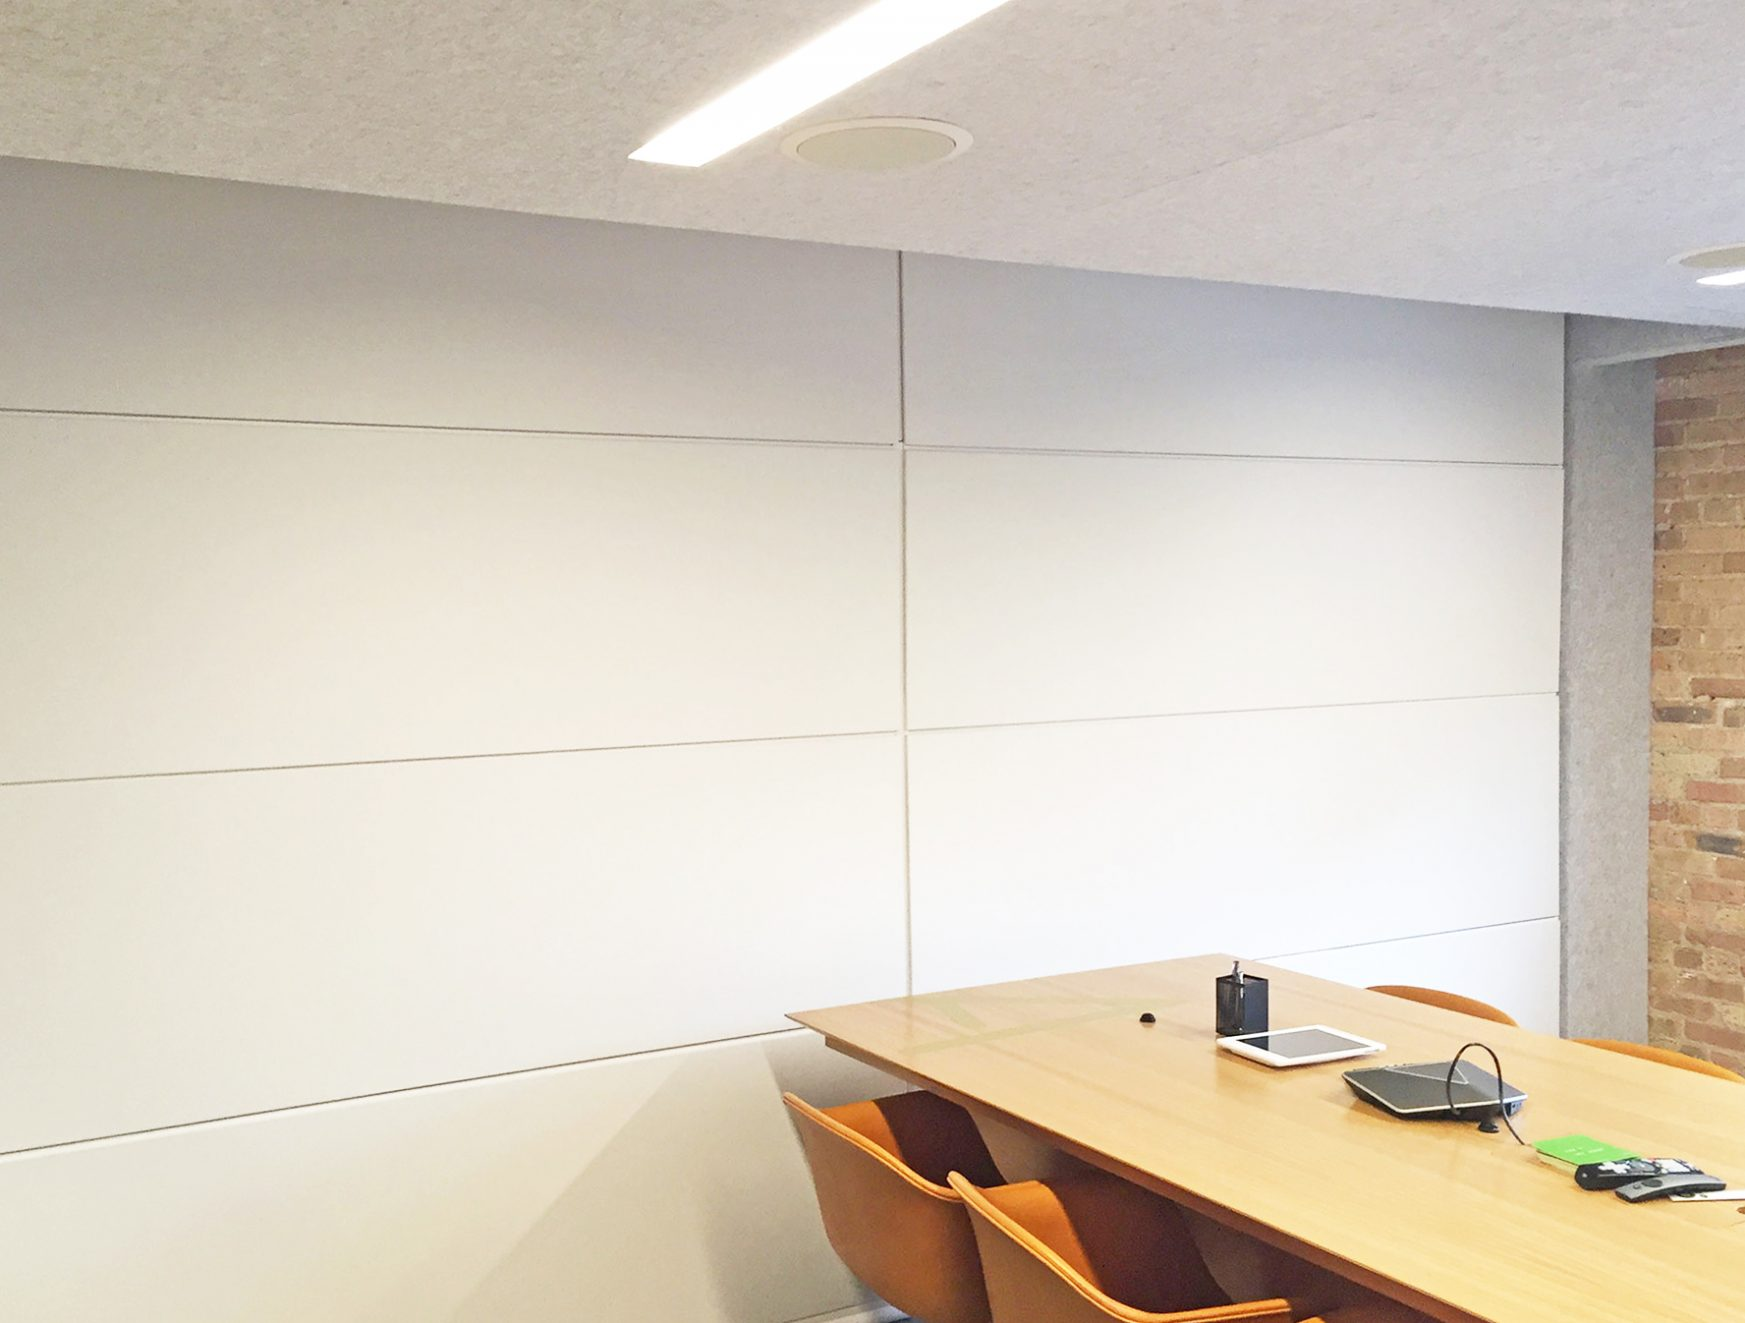 skyfold-zenith-60-acoustic-wall